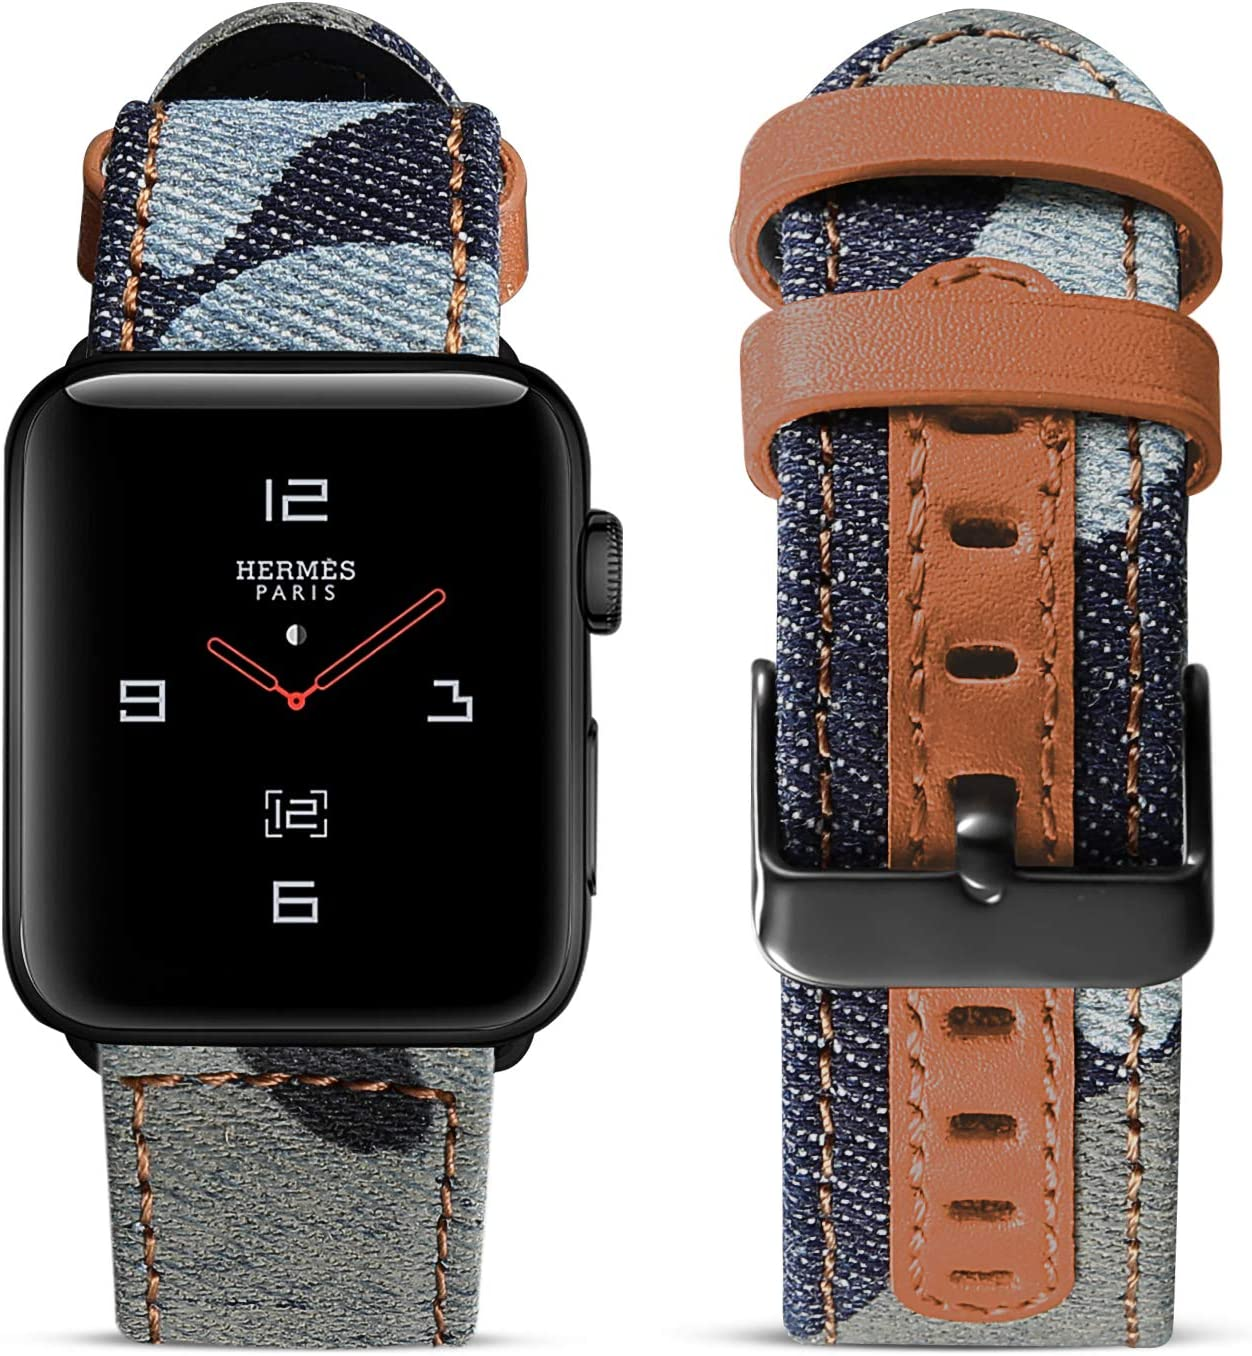 SKYLET Compatible with Apple Watch Band 42mm 38mm Series 5 Series 4 44mm 40mm Leather Band, Canvas Fabric Leather Wristband with Black Metal Buckle Compatible with Apple Watch Series 3 2 1 Men Women